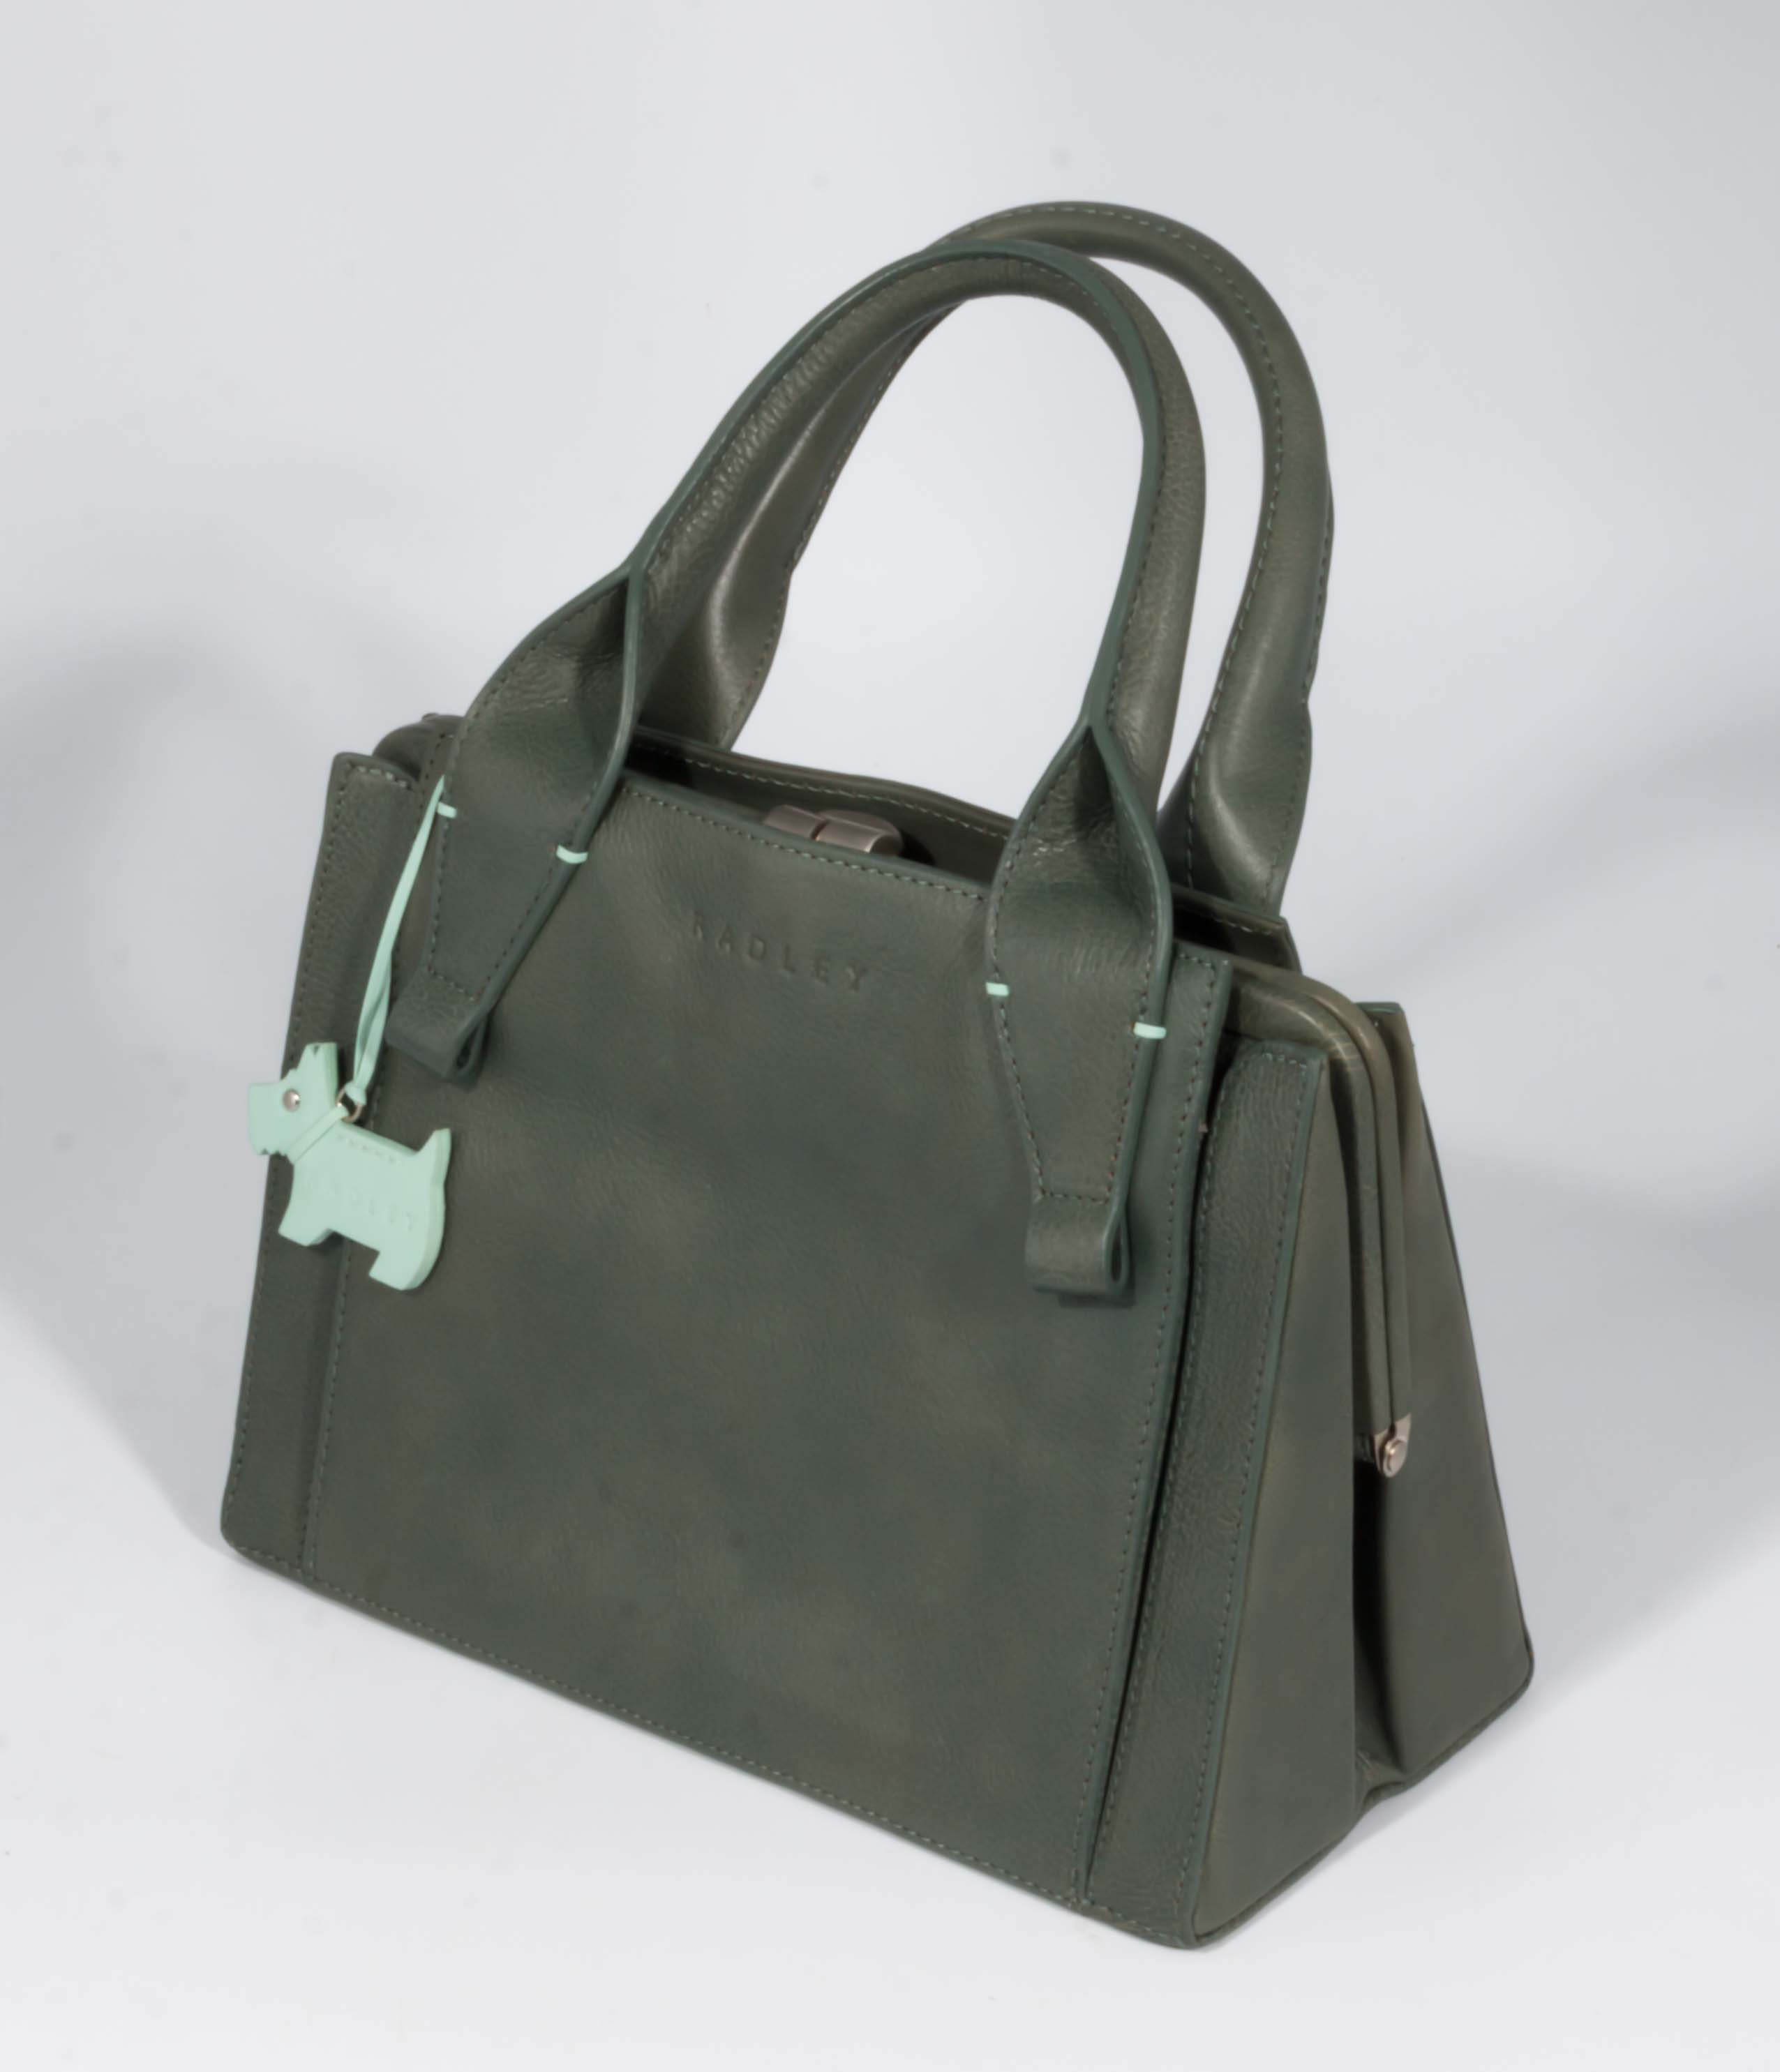 Lot 105 - A Radley handbag, with dust cover